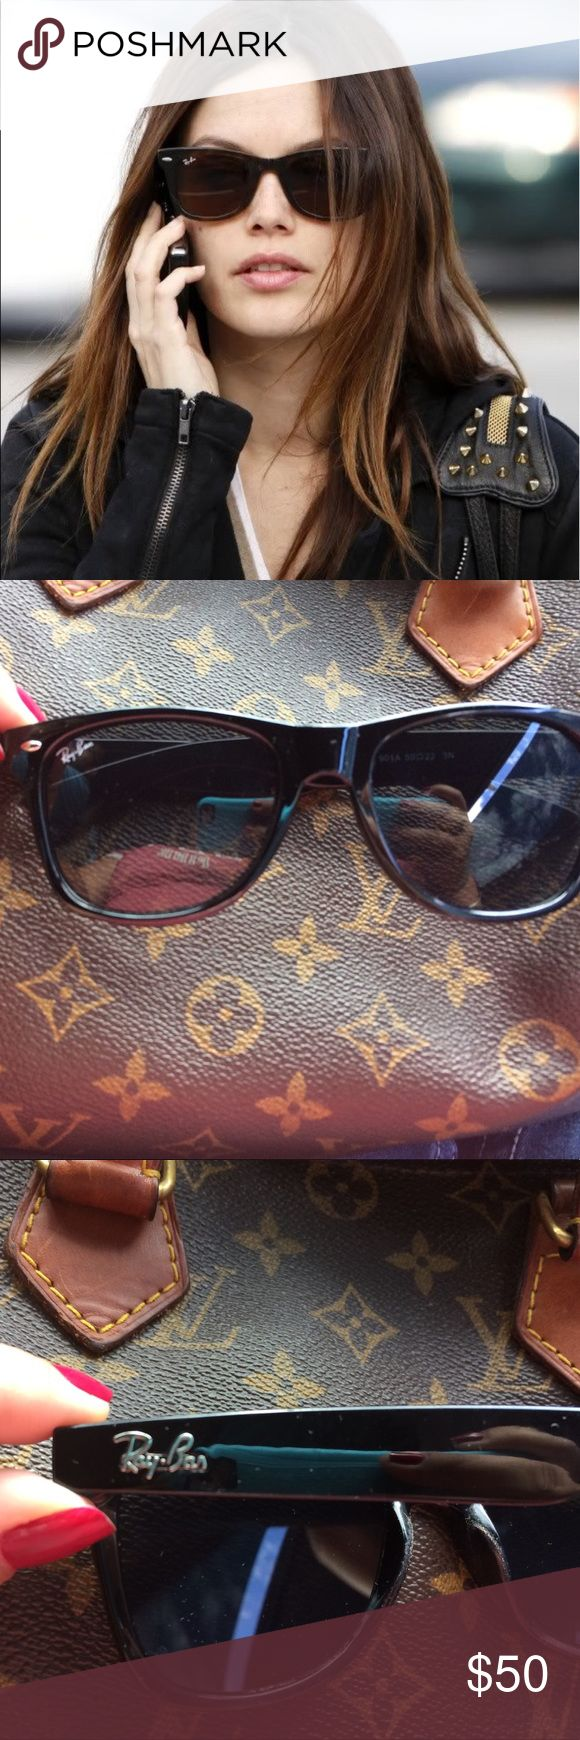 Ray ban wayfarer Ray ban wayfarer classic black sunnies. New no scratches! Perfect 10 condition. Ray-Ban Accessories Sunglasses